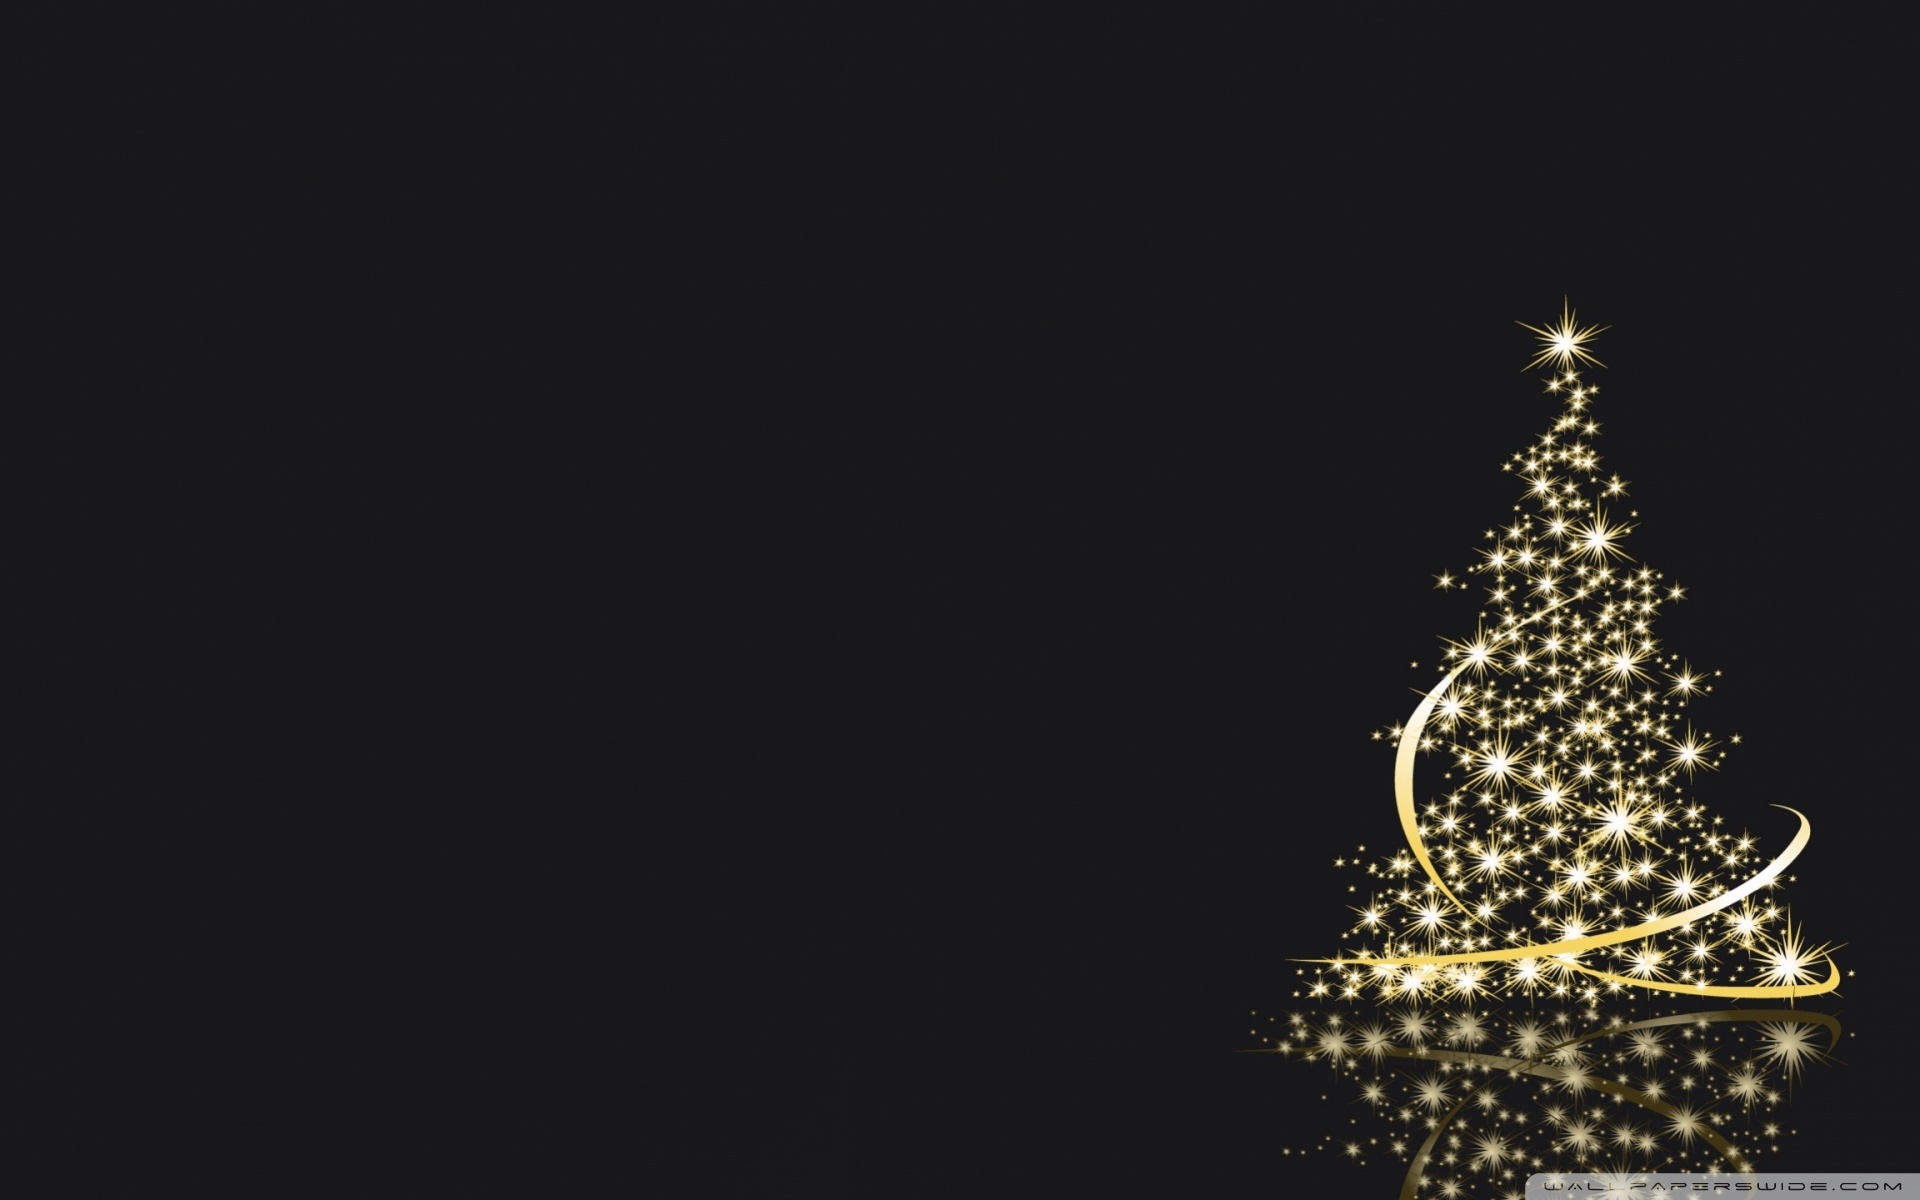 65 Free Christmas Wallpaper For Computer Background On